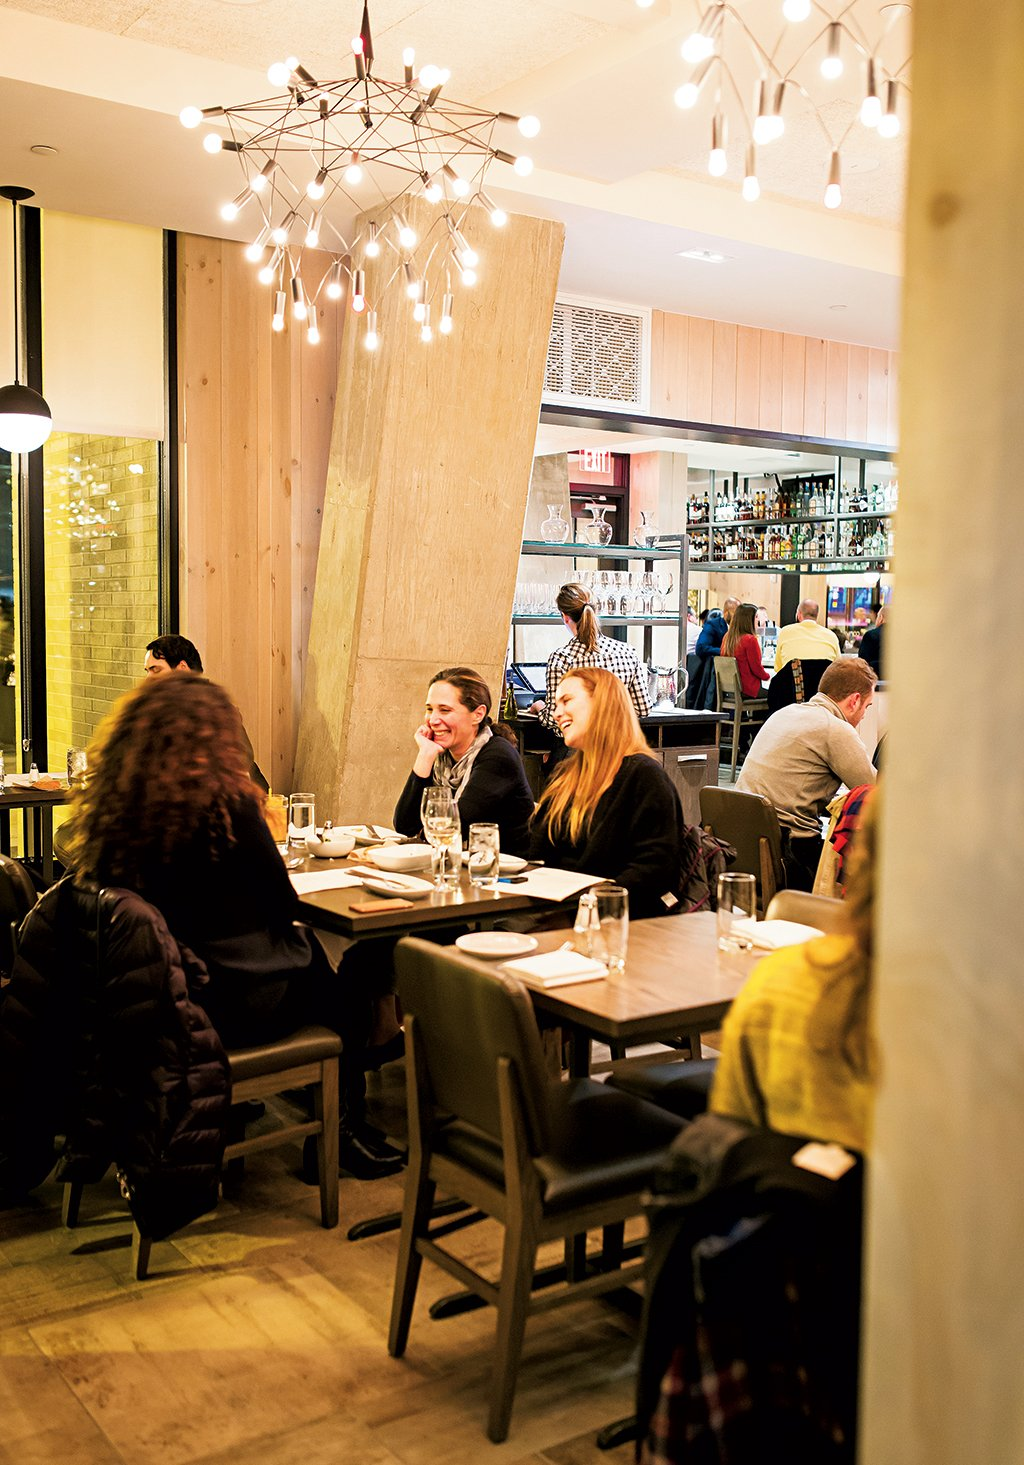 At Convivial in Shaw, Washington, DC, diners can share plates of scallop boudin blanc with snow peas and trout roe (opposite left) or pickled rockfish with green papaya and winter radish. Photograph by Scott Suchman.